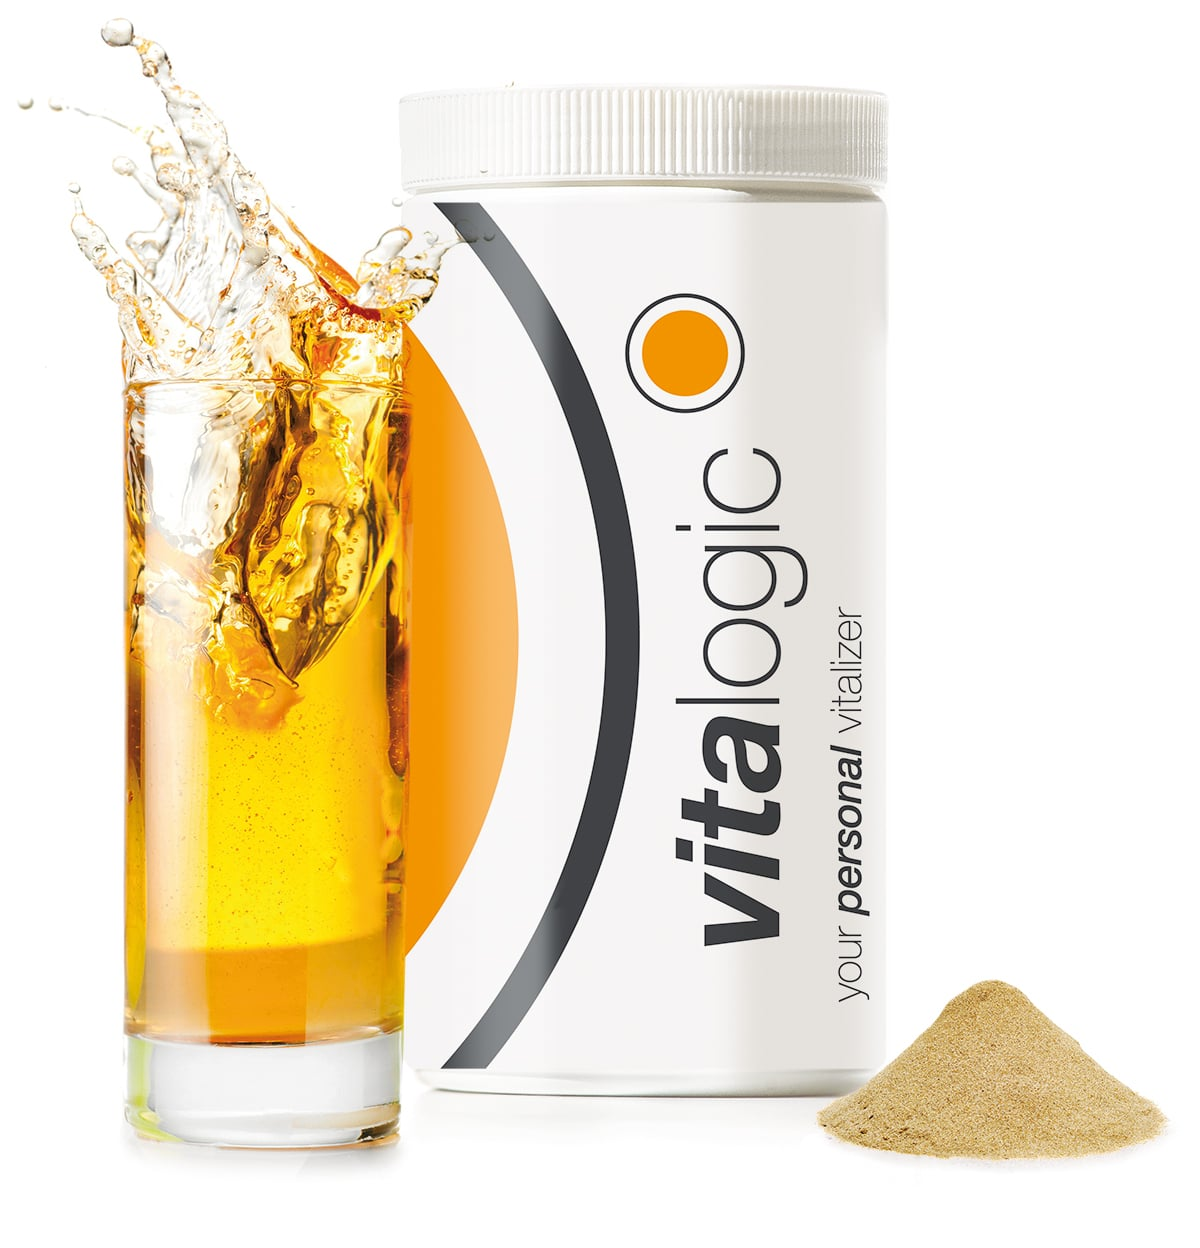 Vitalogic-amino acids tailored to your needs